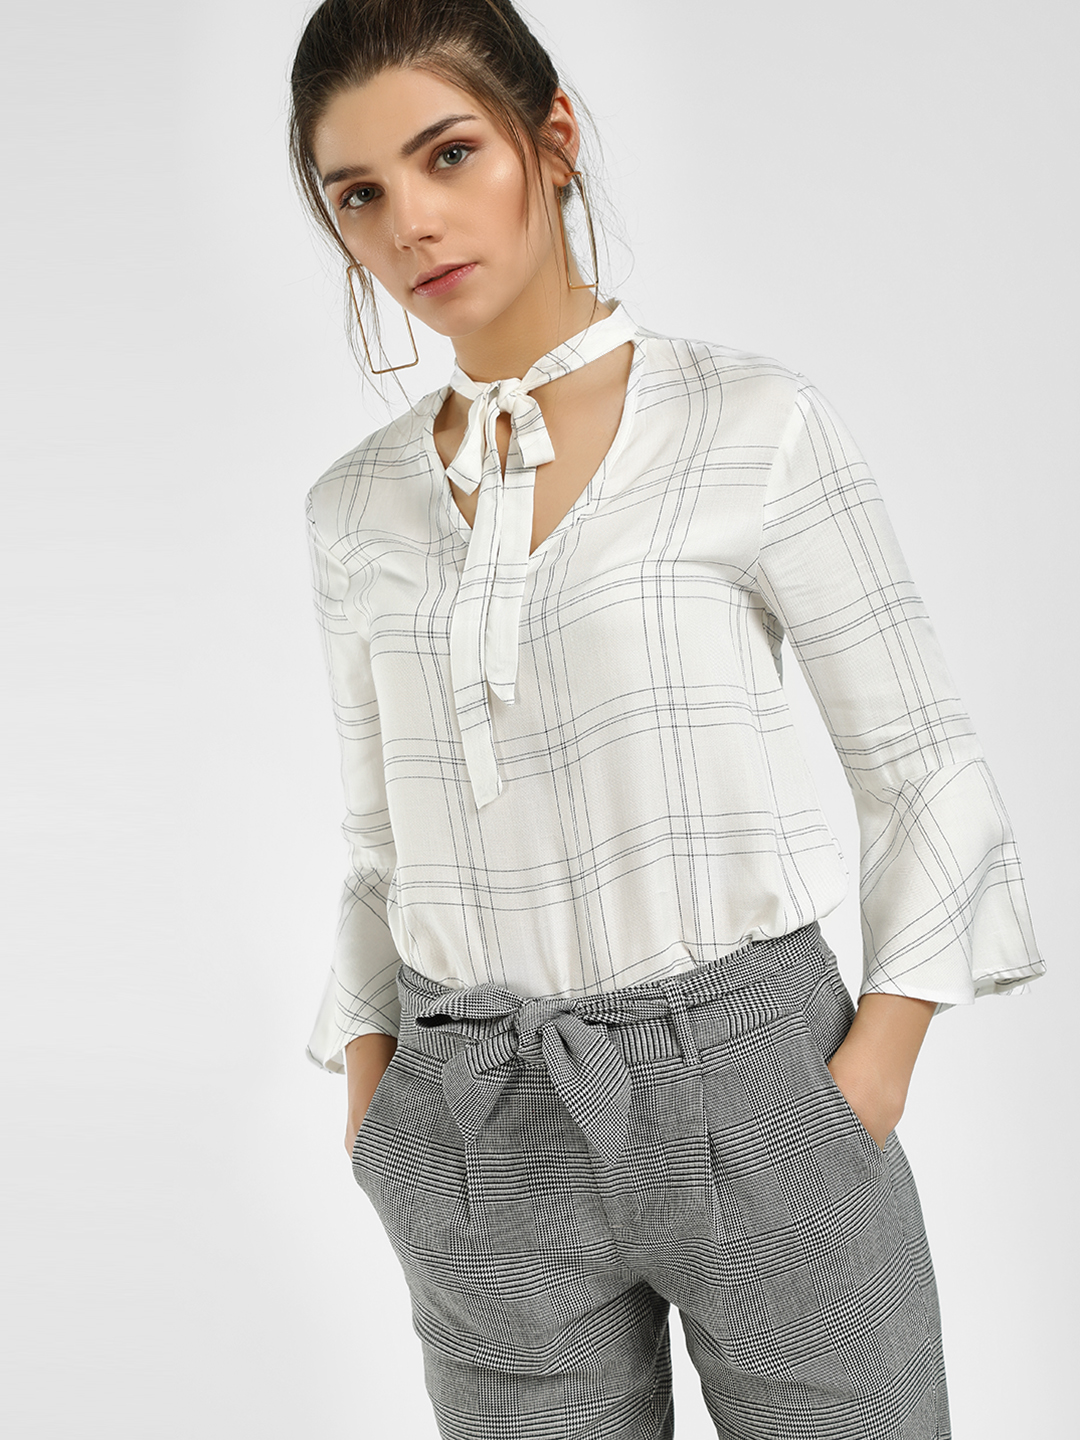 UMM White Windowpane Check Tie-Up Blouse 1